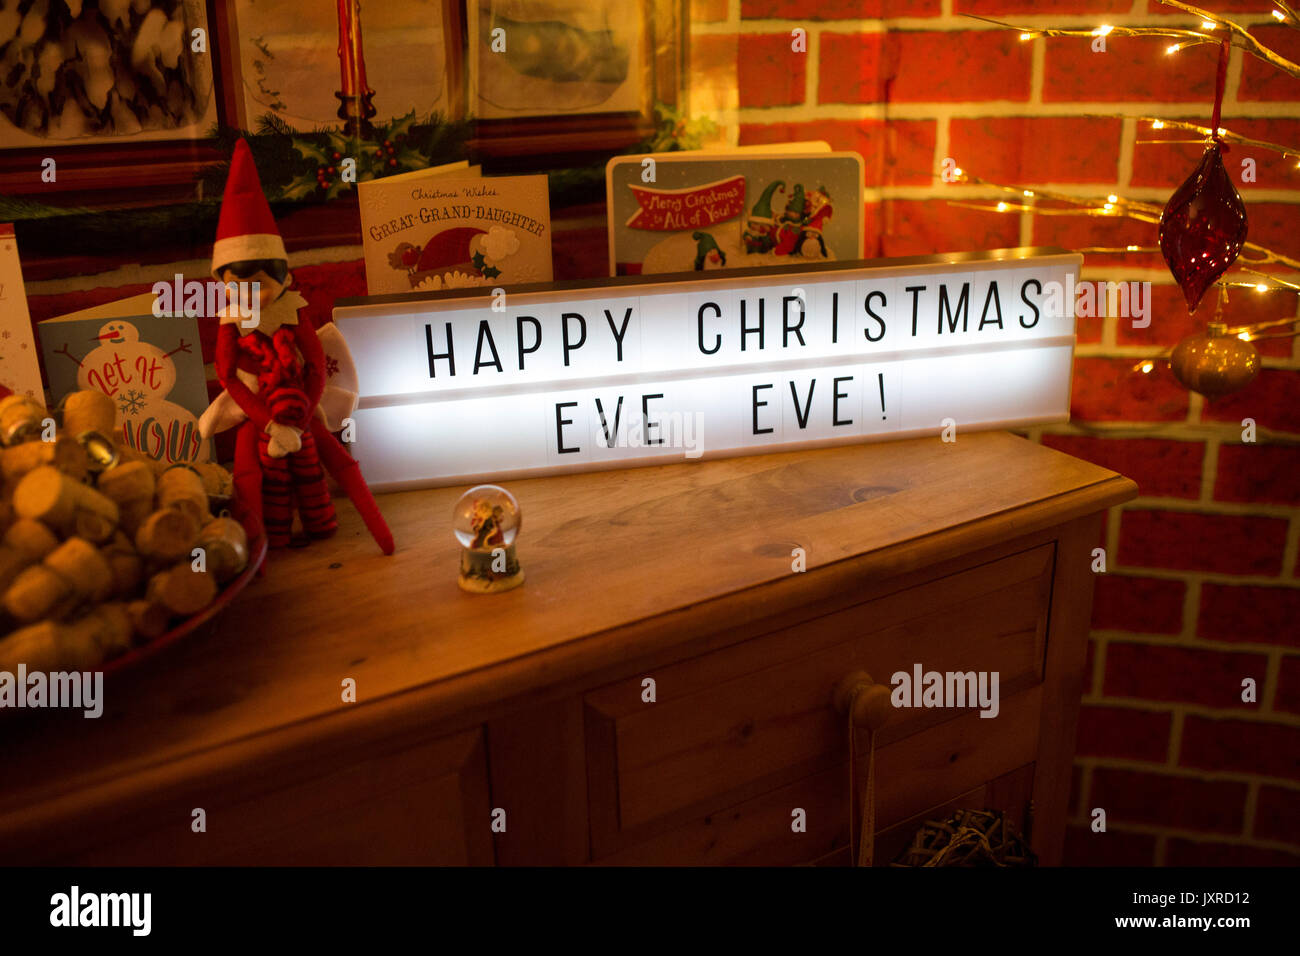 Lightbox reading 'Happy Christmas Eve Eve' on top of chest, surrounded by Christmas cards and paraphernalia. - Stock Image